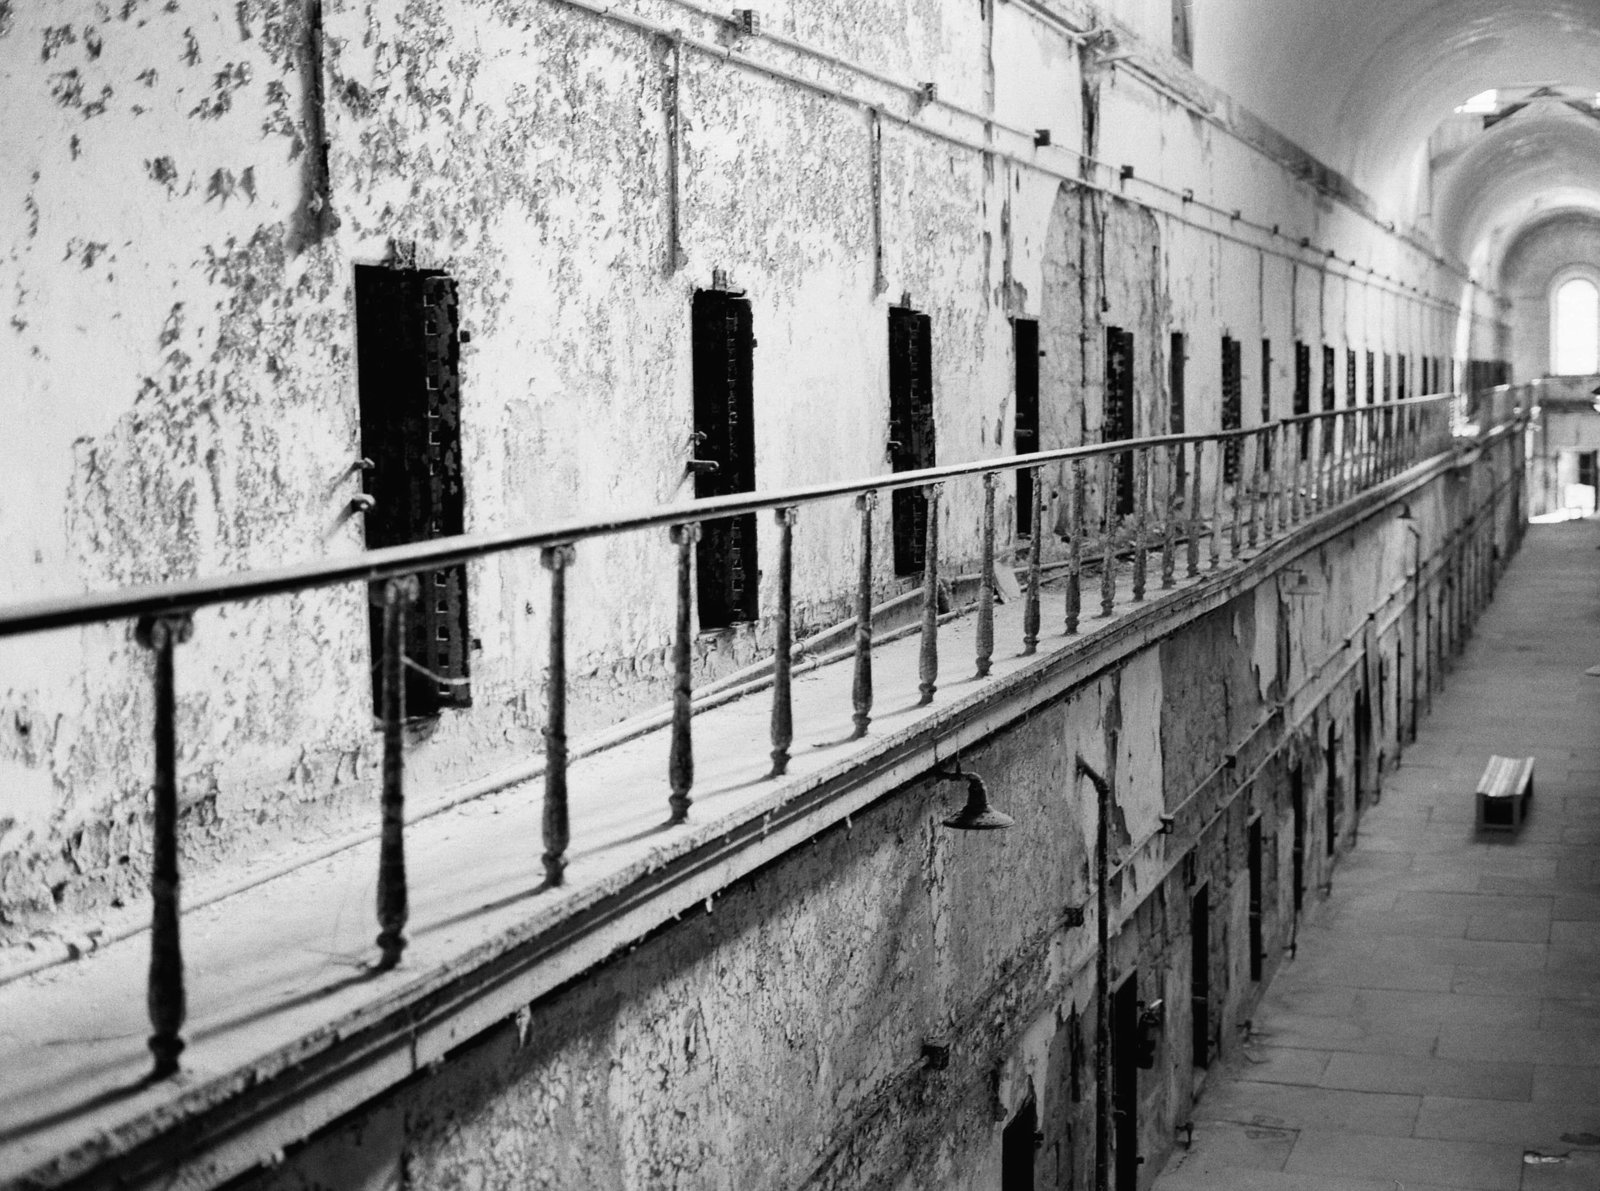 hall-cell-eastern-state-penitentiary-film-philadephia-pa-kate-timbers-photography-1985